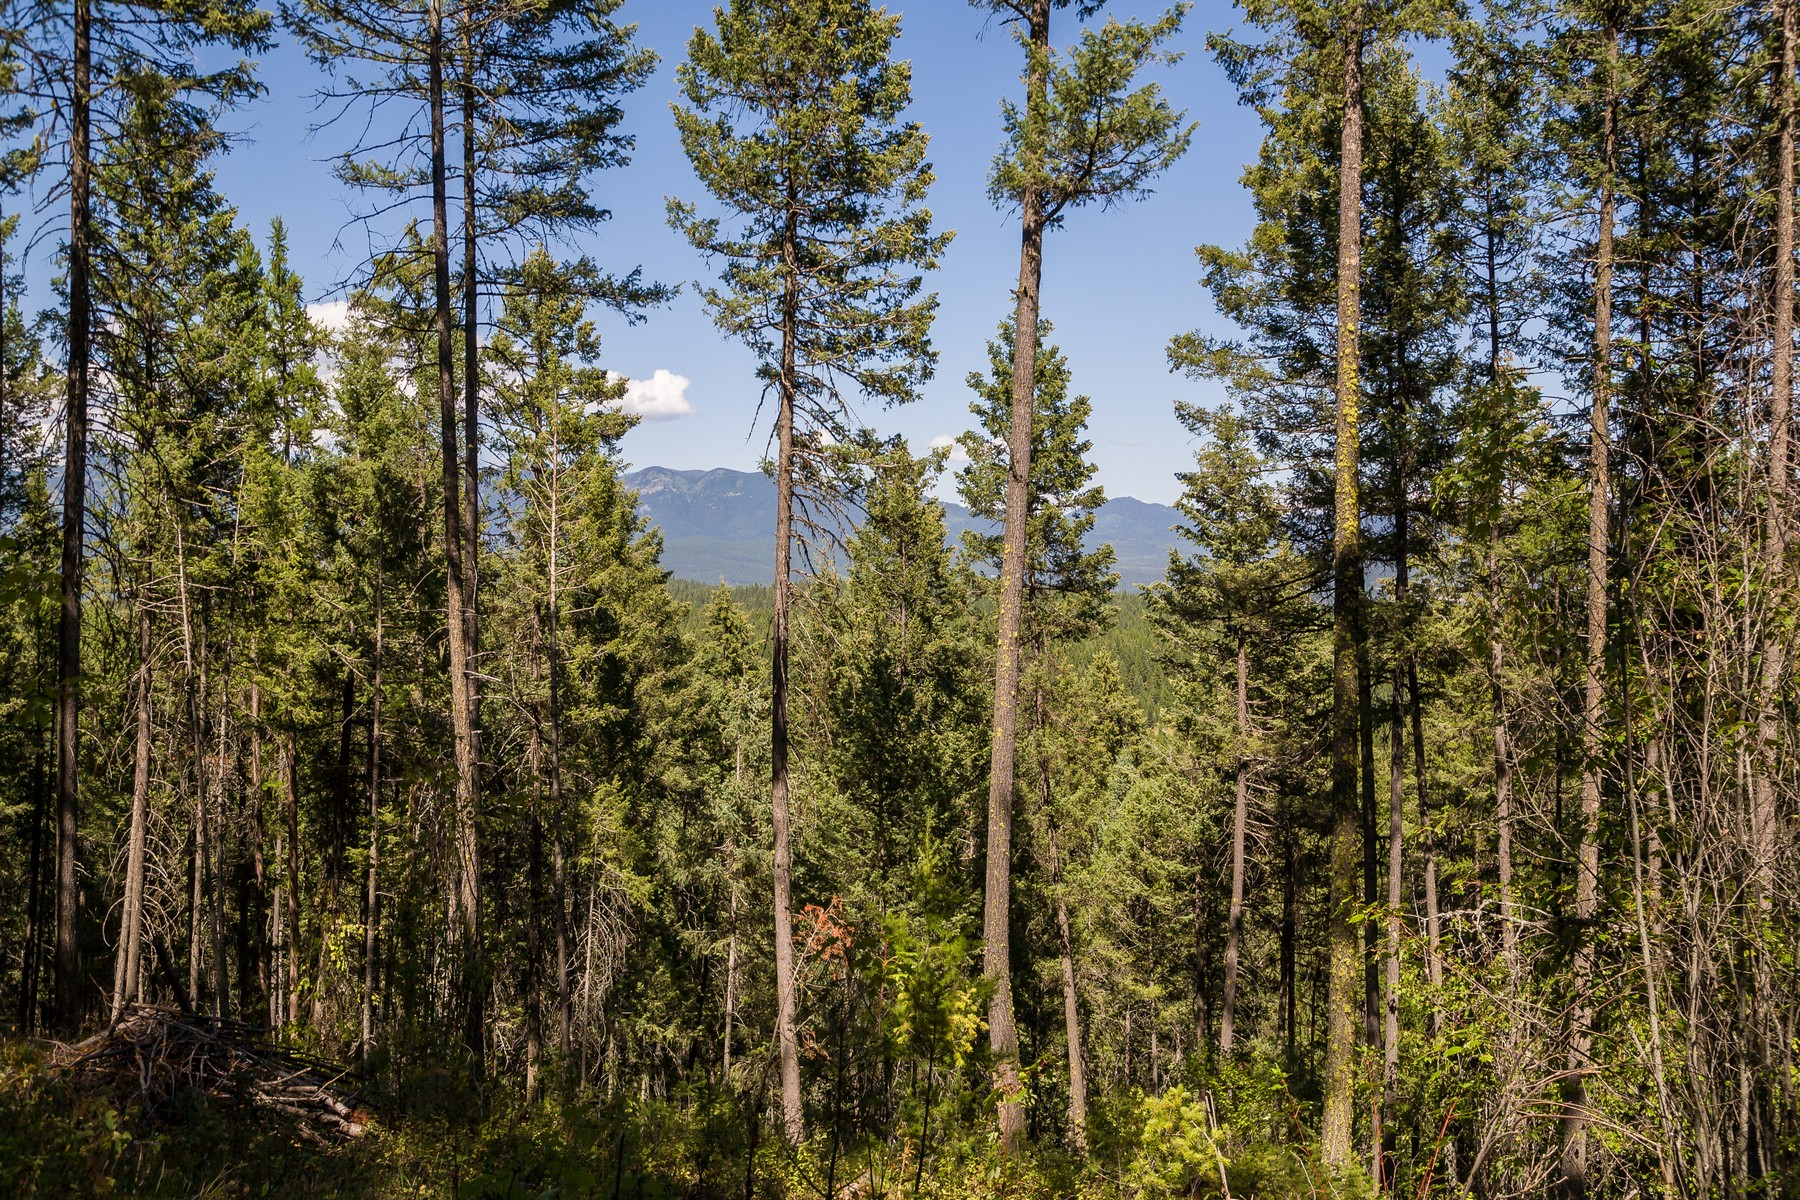 Additional photo for property listing at 828 Whitefish Ranch Road, Lot 6, Whitefish, MT 599 828  Whitefish Ranch Rd Lot 6 Whitefish, Montana 59937 United States